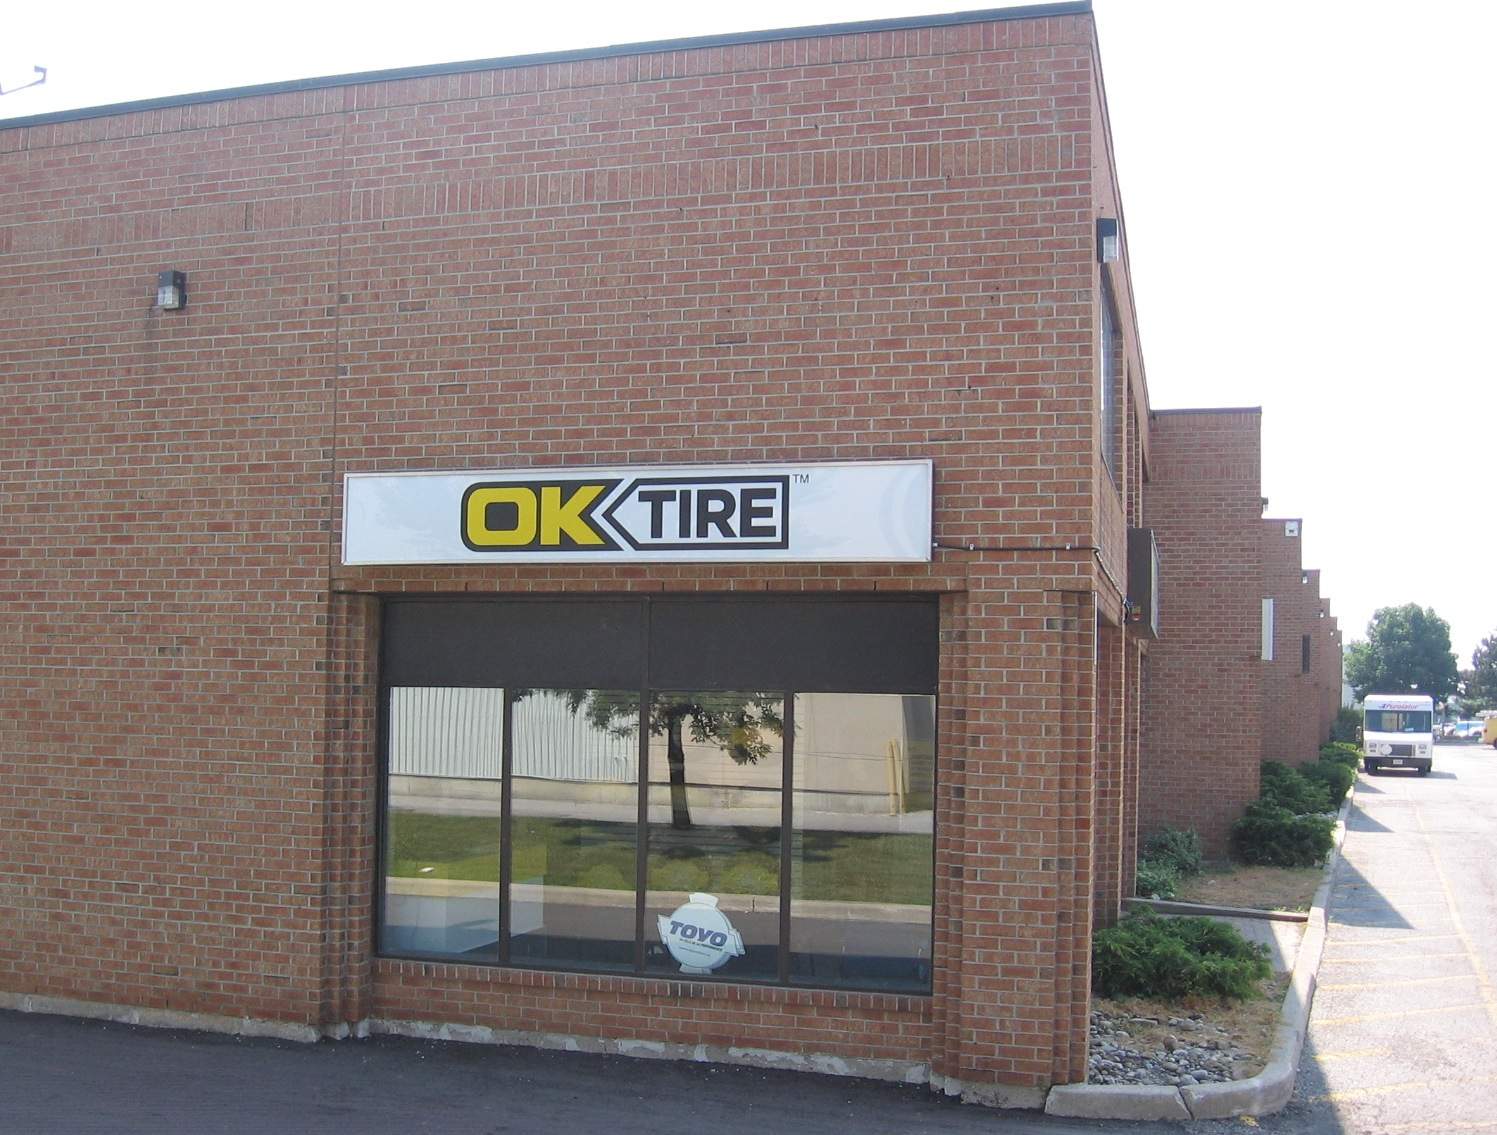 OK Tire in Brampton